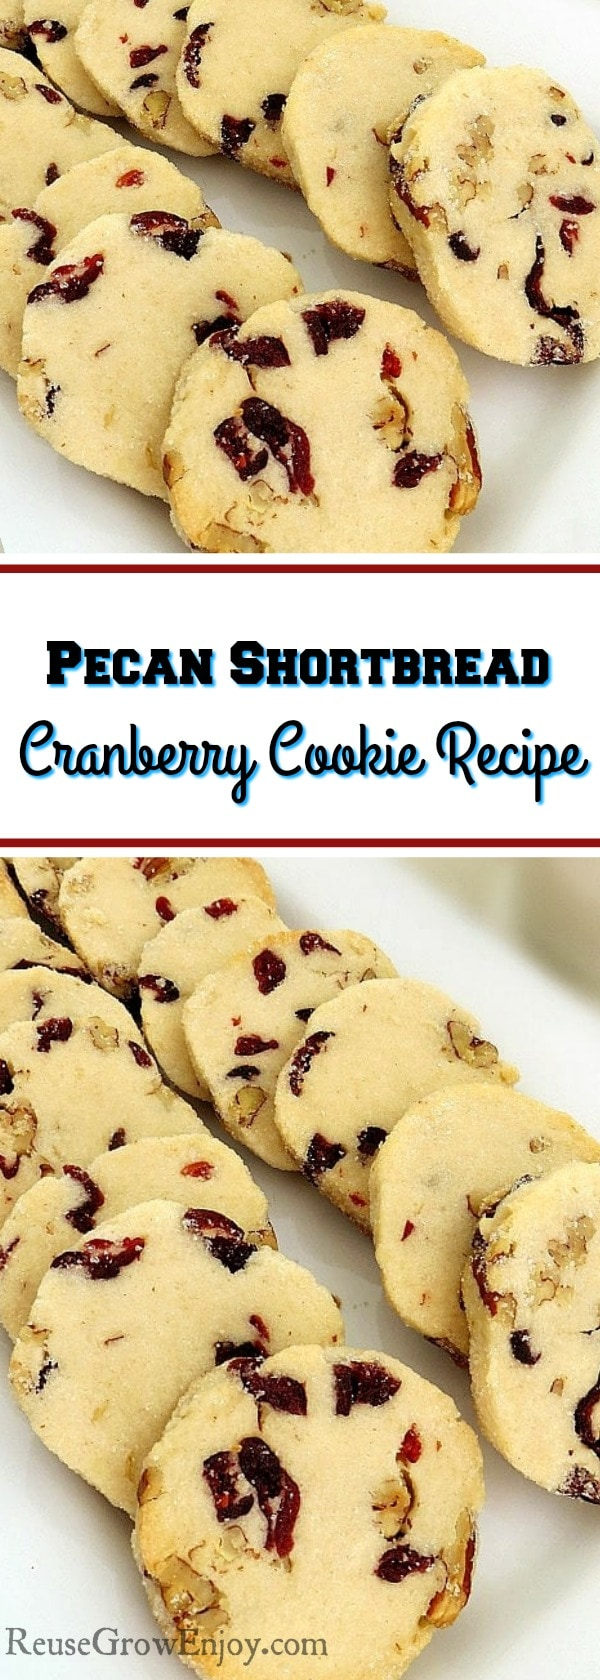 If you find you have a bunch or cranberries in your kitchen, here is a wonderful recipe for a pecan shortbread cranberry cookie!